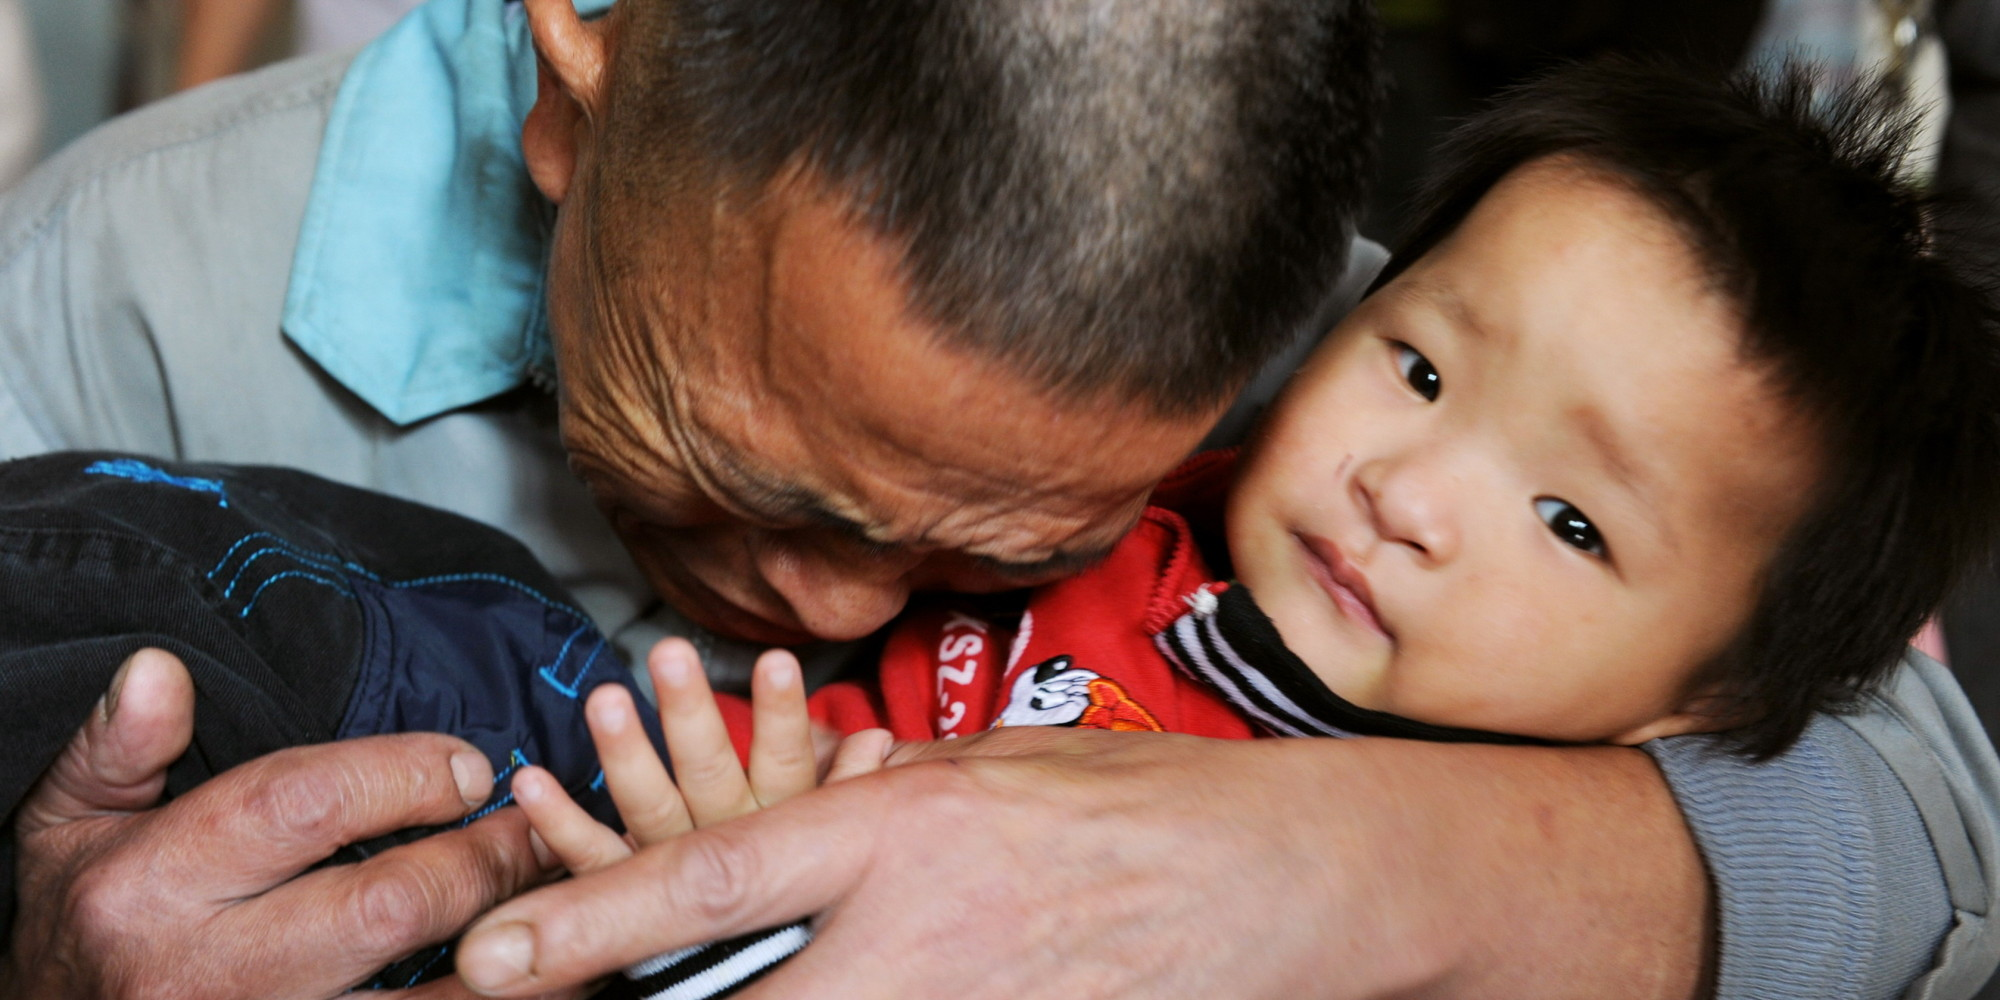 Police In China Rescue 92 Kidnapped Children In Huge Human Trafficking ...: www.huffingtonpost.com/2013/09/28/china-kidnapped-children_n...